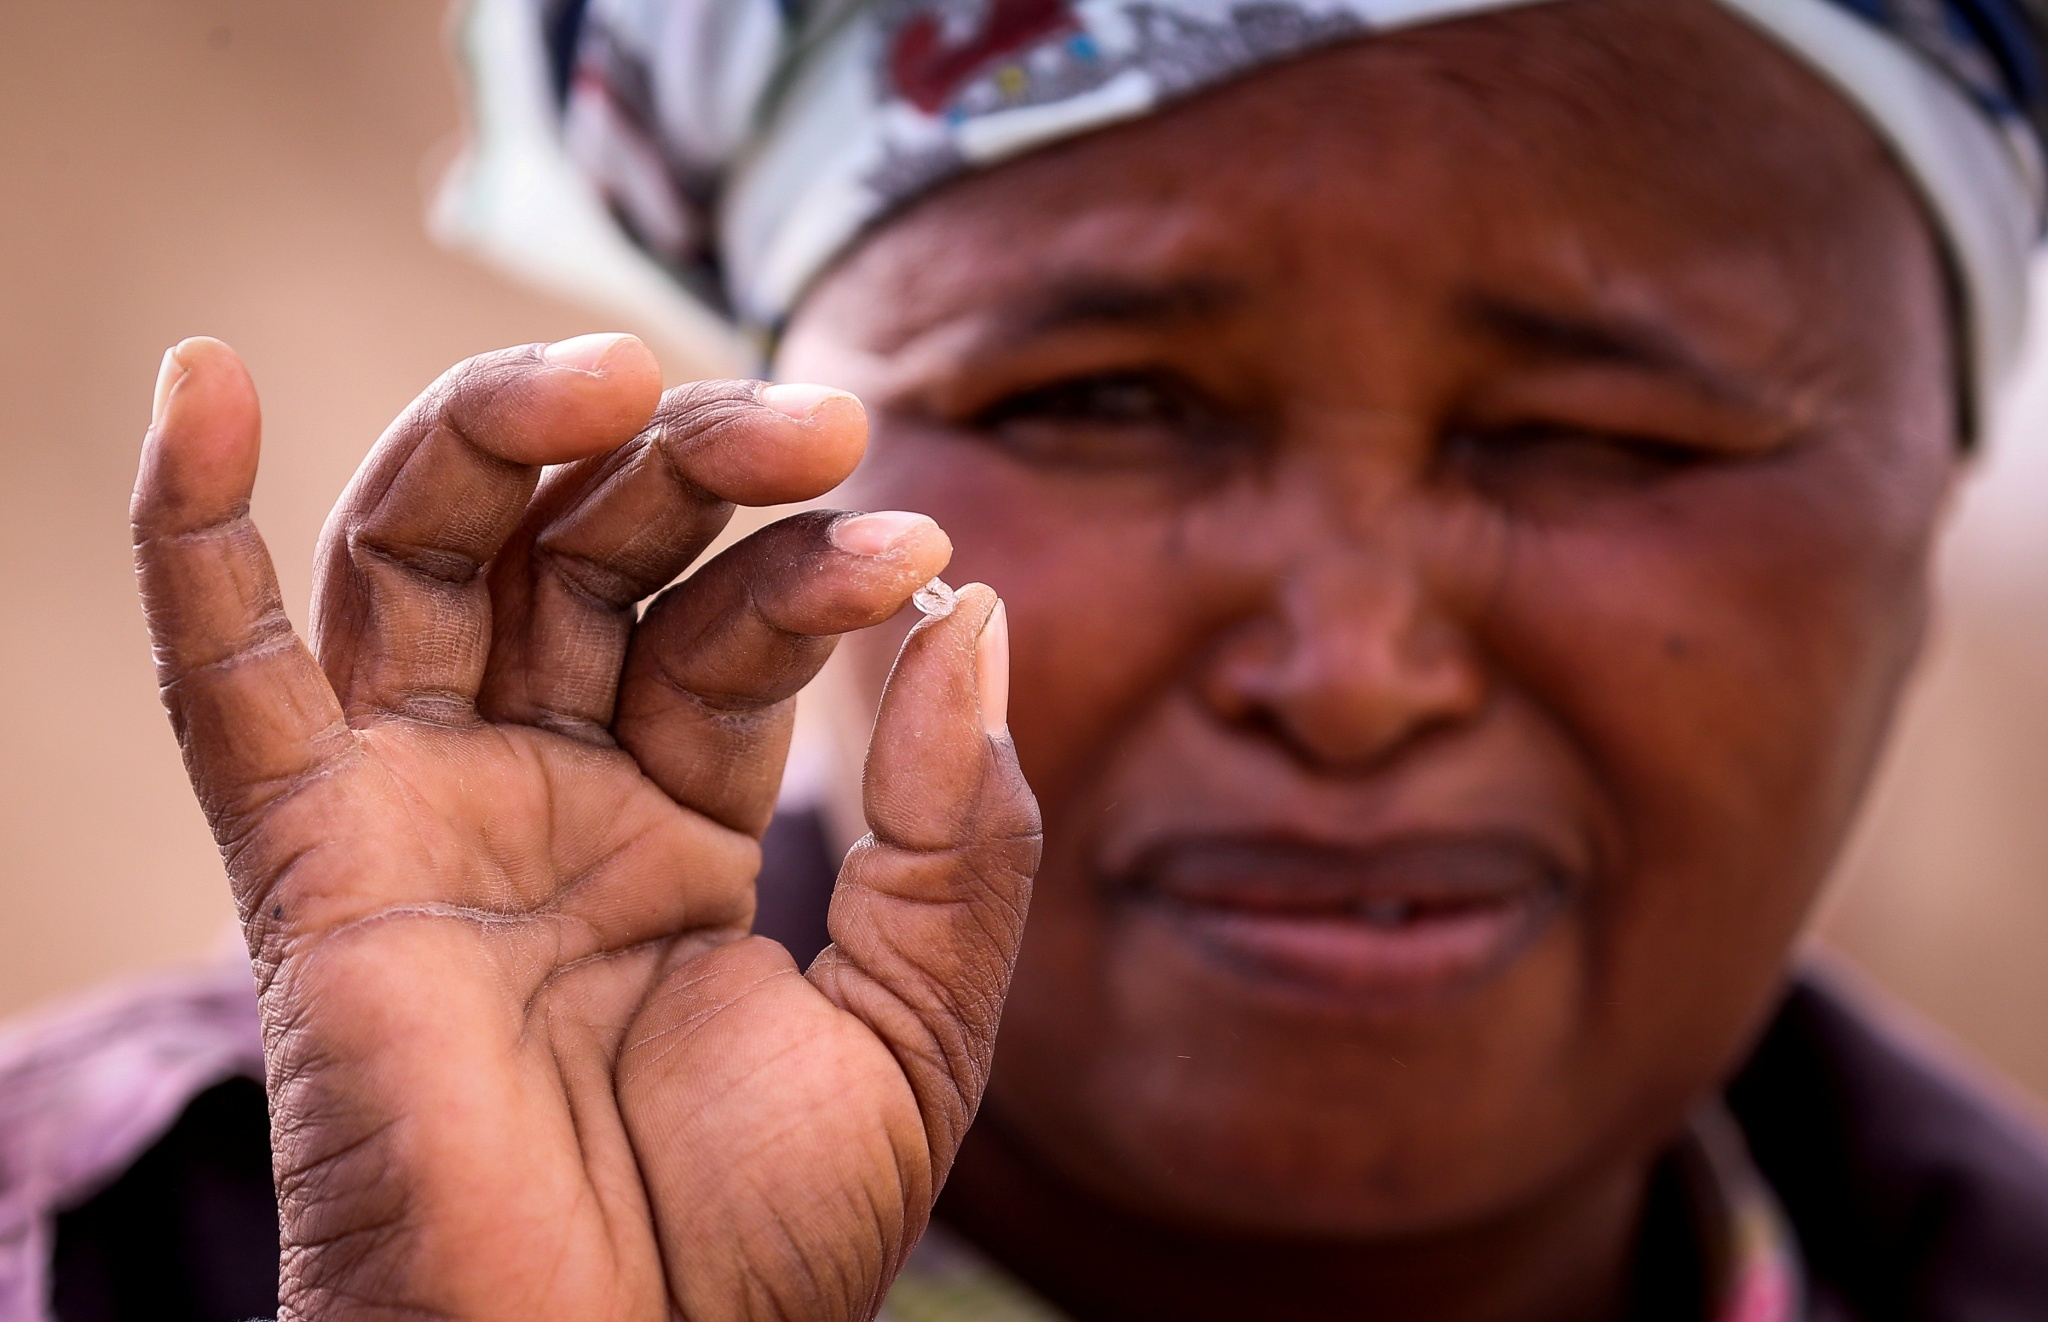 An artisanal miner holds an uncut diamond in her hand in Kimberley